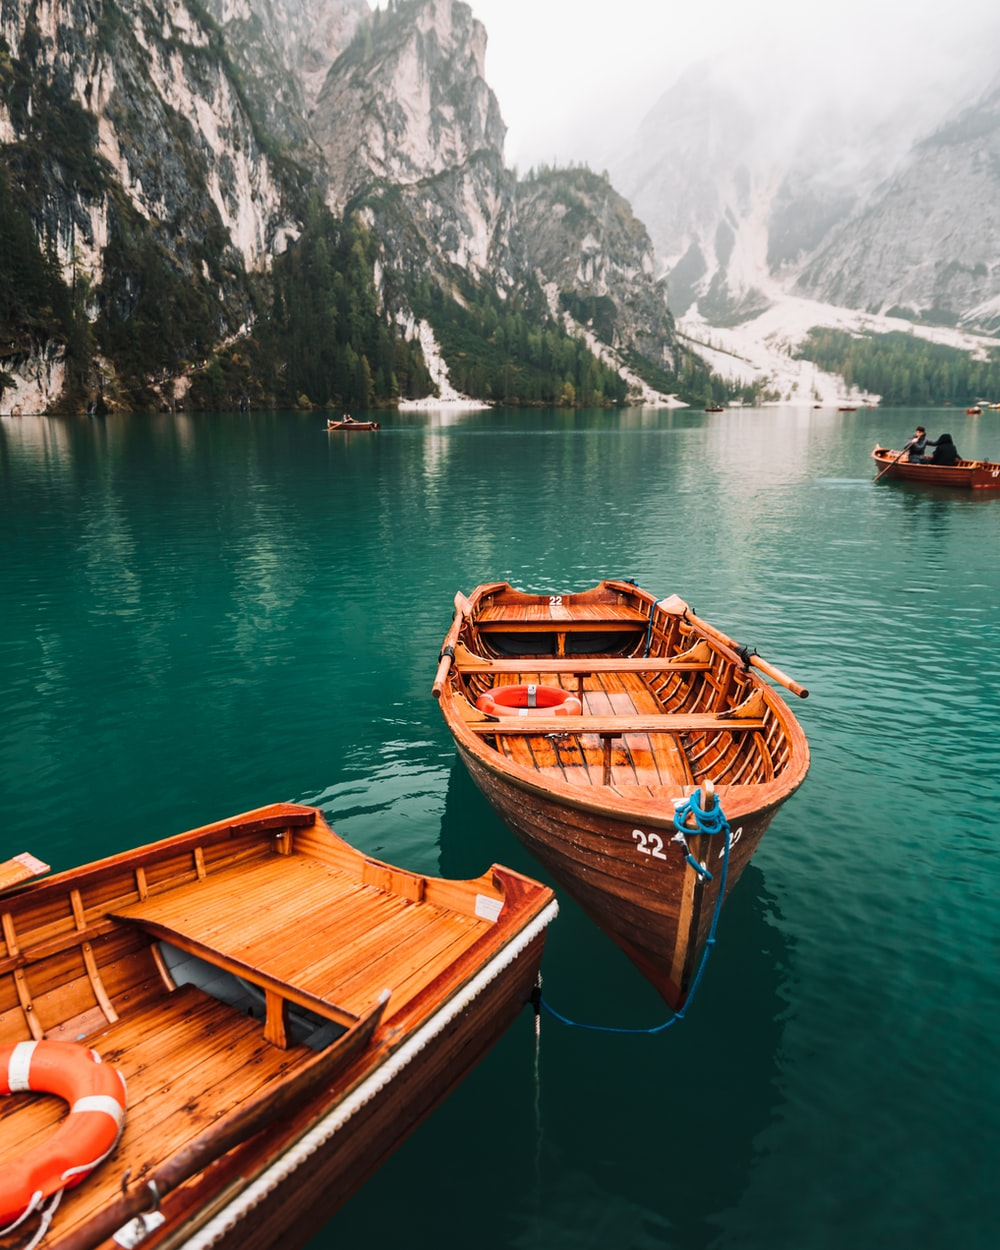 brown wooden boat on water